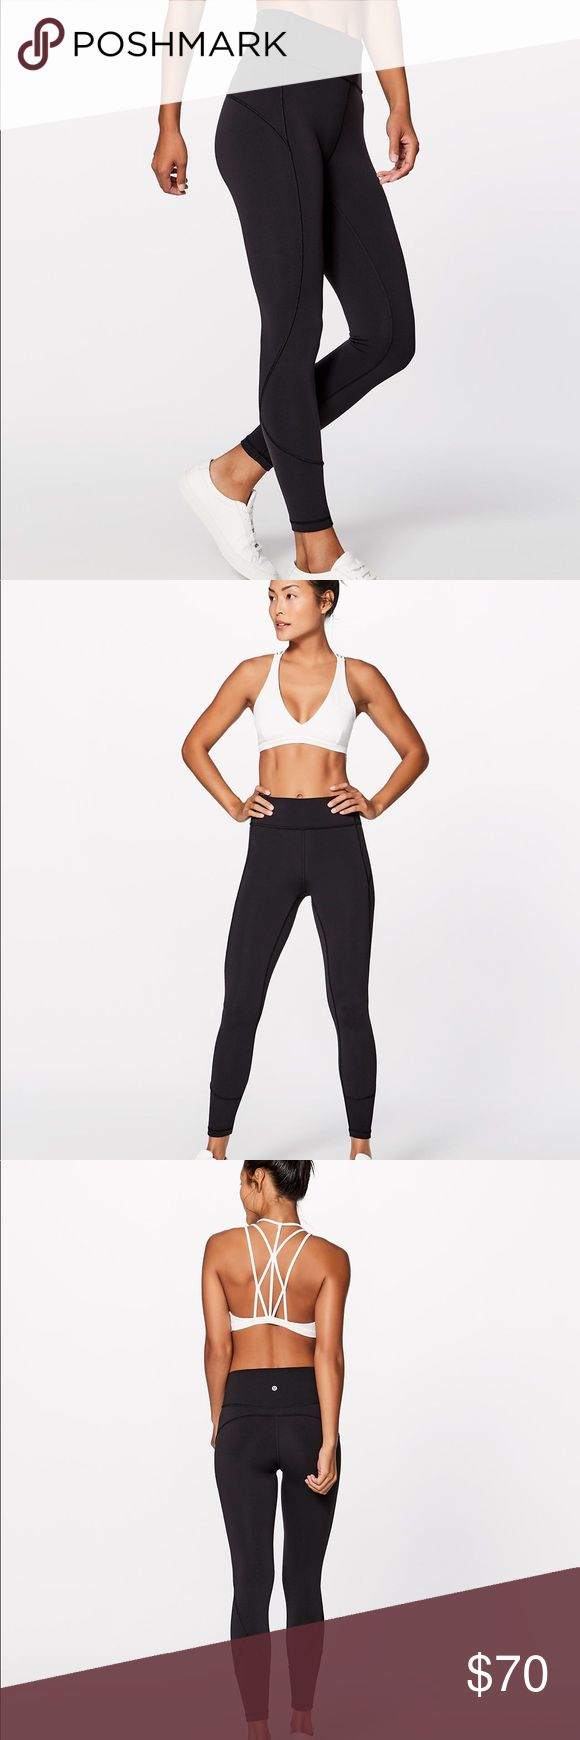 NWT 🍋 LuluLemon 🍋 In Movement 7/8 Tight in Black Meet your new studio workout companion: a sleek tight that fits like a second skin. Everlux fabric is four-way stretch, sweat-wicking, feels cool to the touch, and dries so fast it's like magic. Added Lycra for stretch and shape retention. Hidden waistband in pocket to stash your phone.   ✨BRAND NEW with TAGS!✨ Currently retailing for full price. My leggings collection is excessive, but it's to your benefit☺️  💜 Reasonable offers…